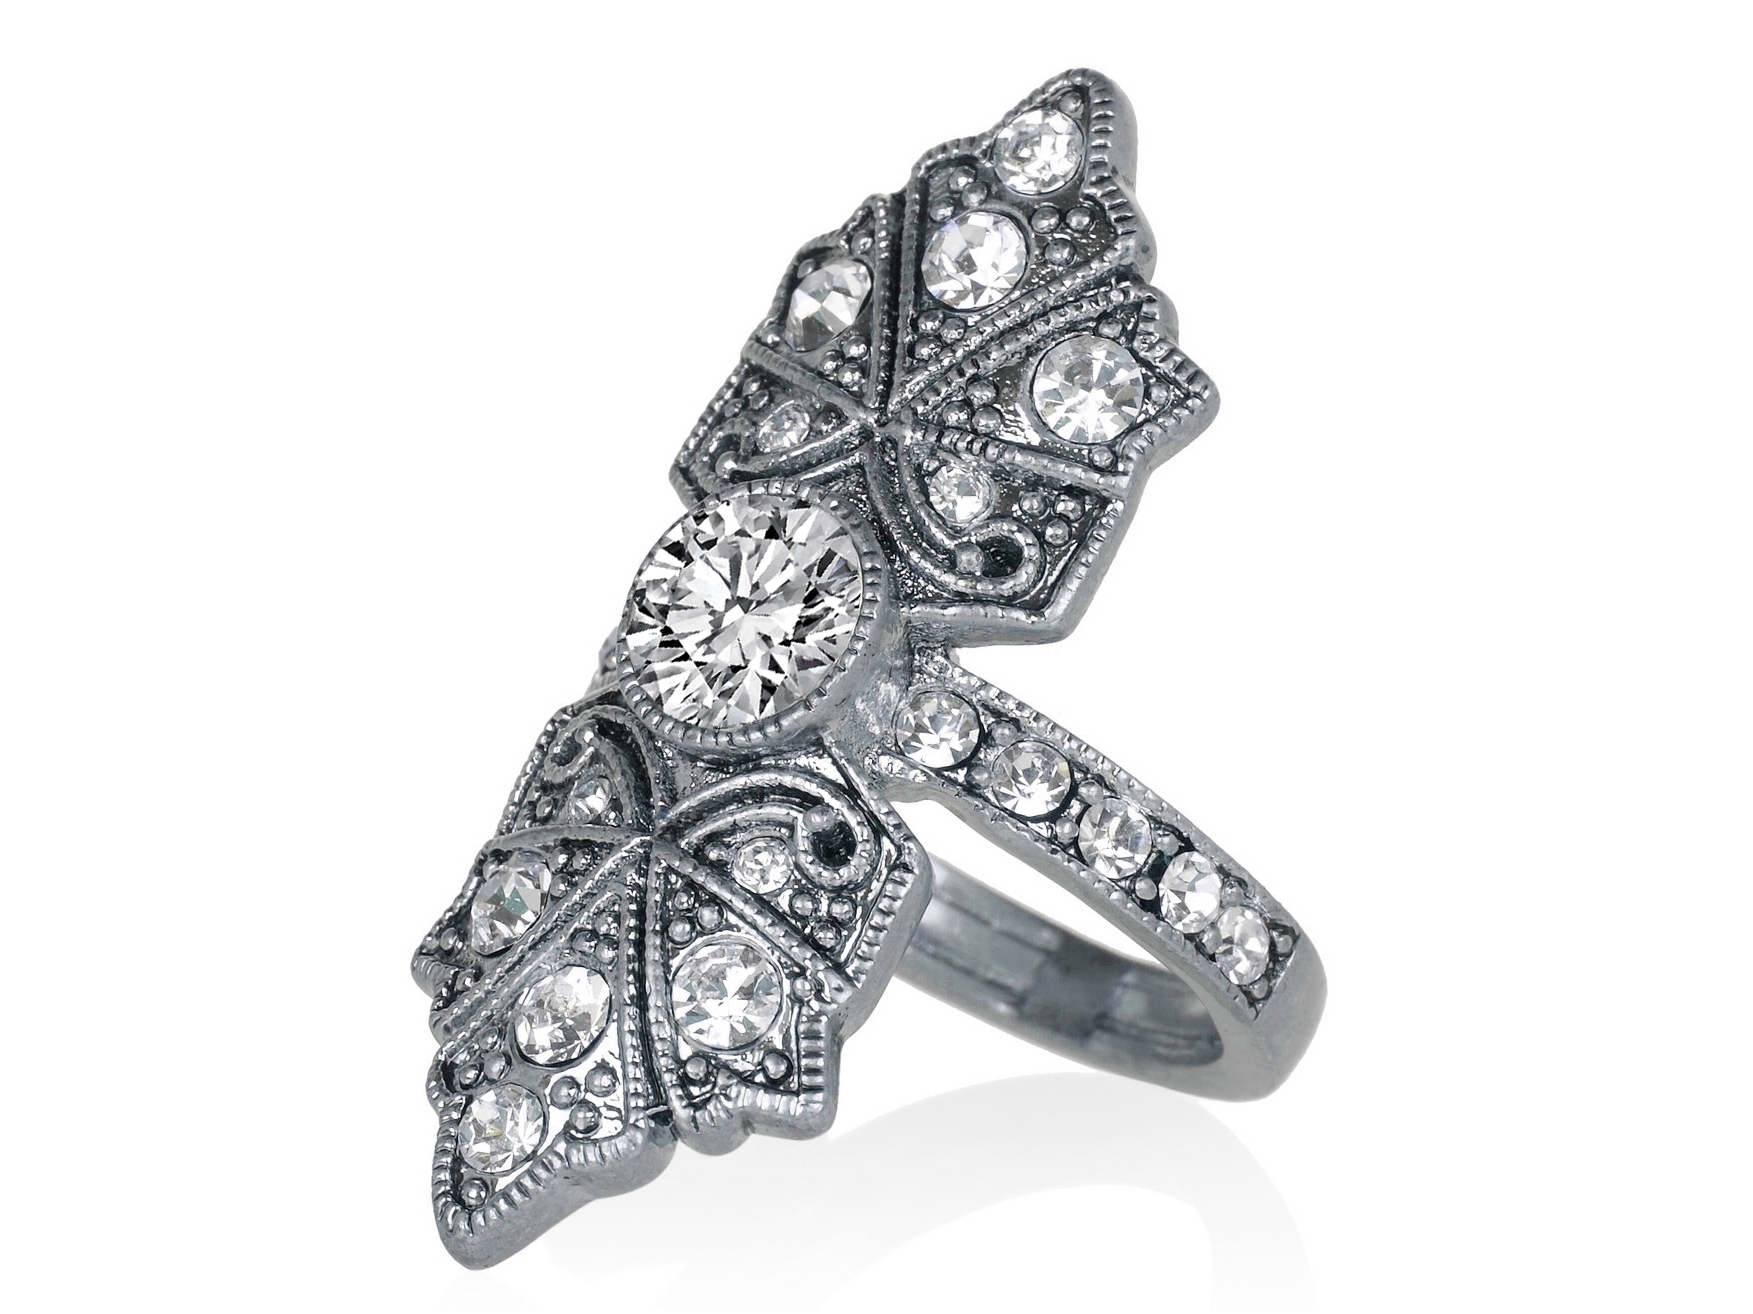 Butterfly Edwardian Diamond Engagement Ring in 14K White Gold